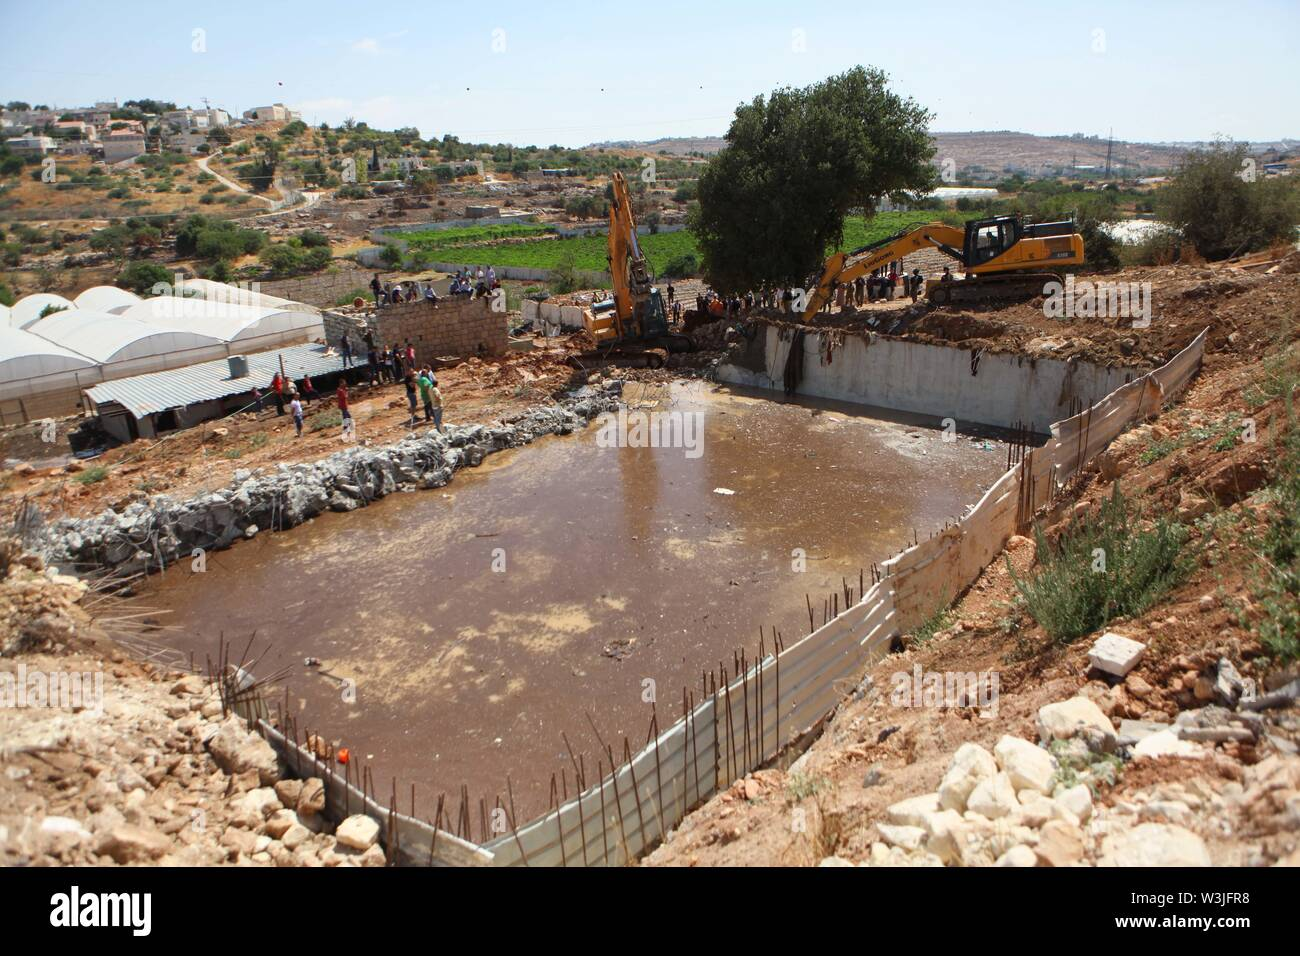 Hebron. 16th July, 2019. Israeli bulldozers demolish a water facility in 'Area C' of the West Bank city of Hebron, July 16, 2019. The Israeli army demolished water wells and other facilities used by Palestinians in the area for lacking construction license. Credit: Mamoun Wazwaz/Xinhua/Alamy Live News - Stock Image